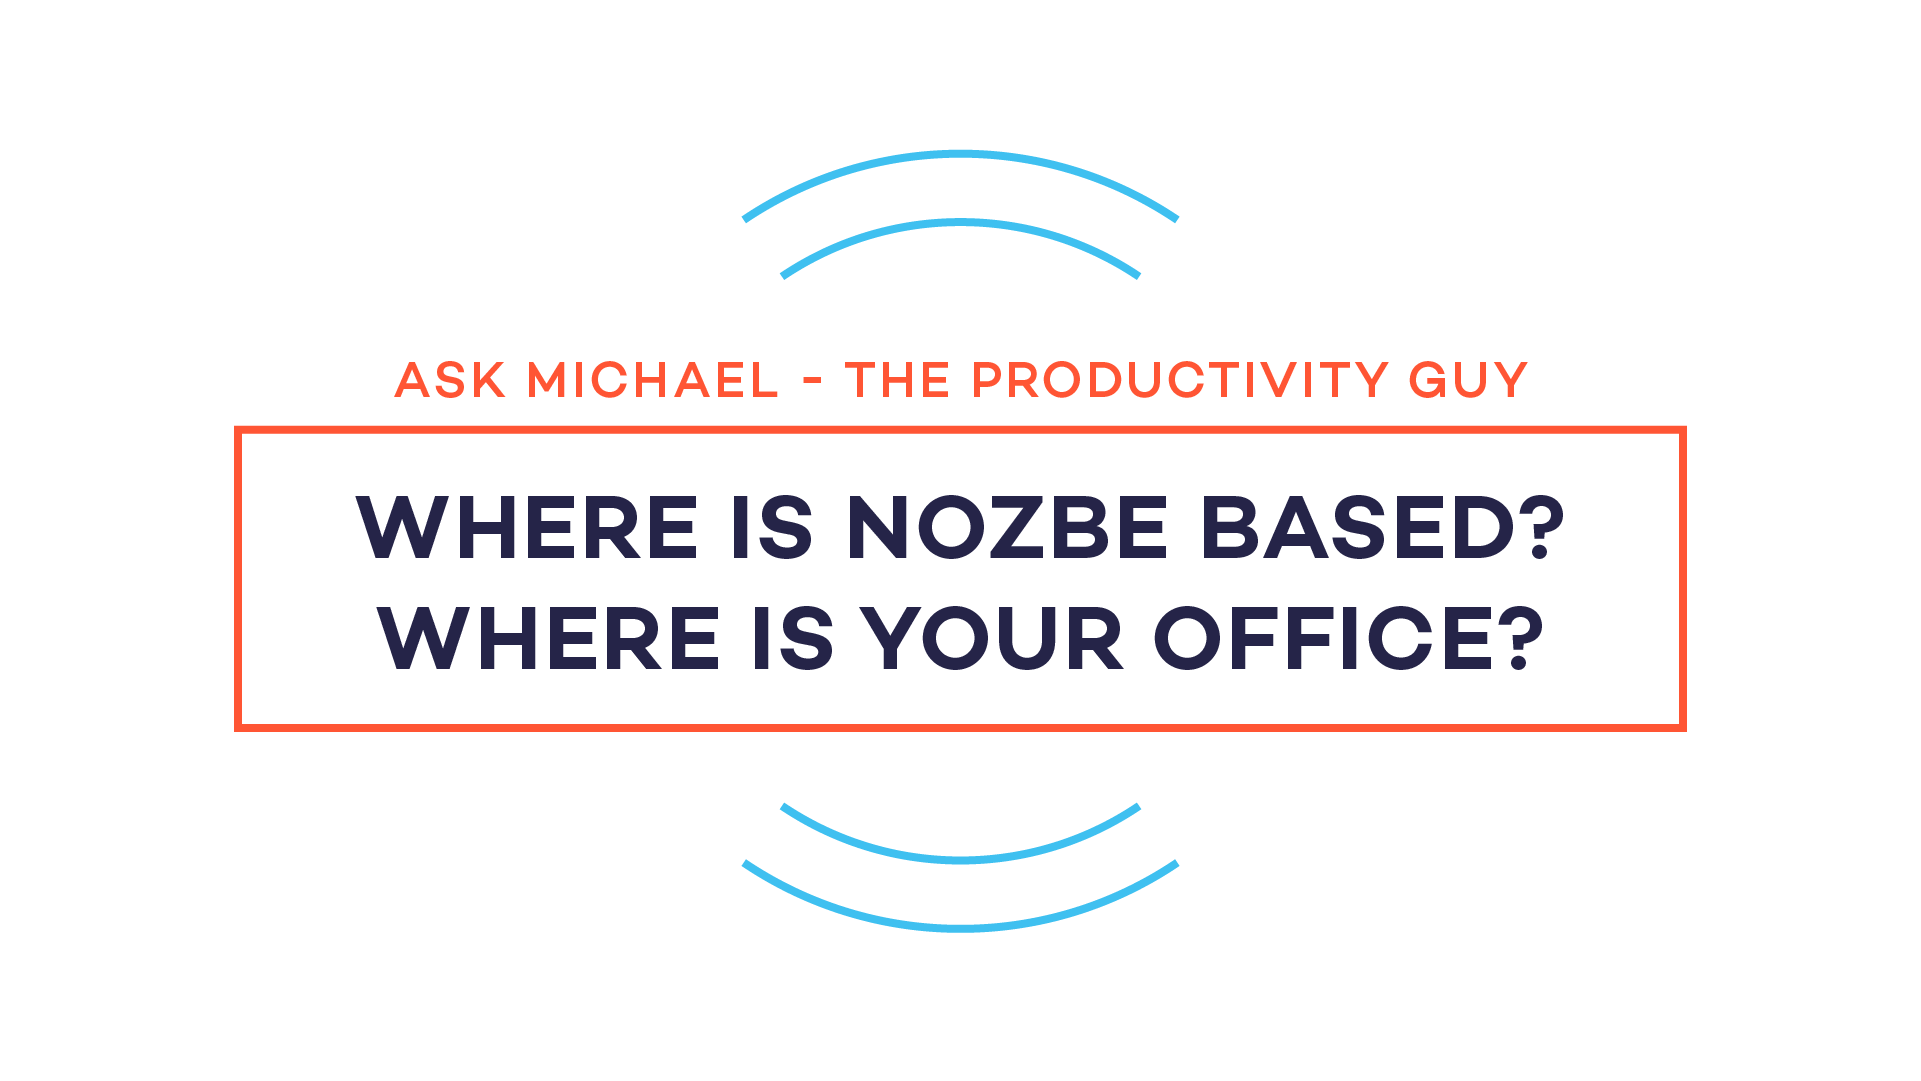 Where is Nozbe based? Where is your office?